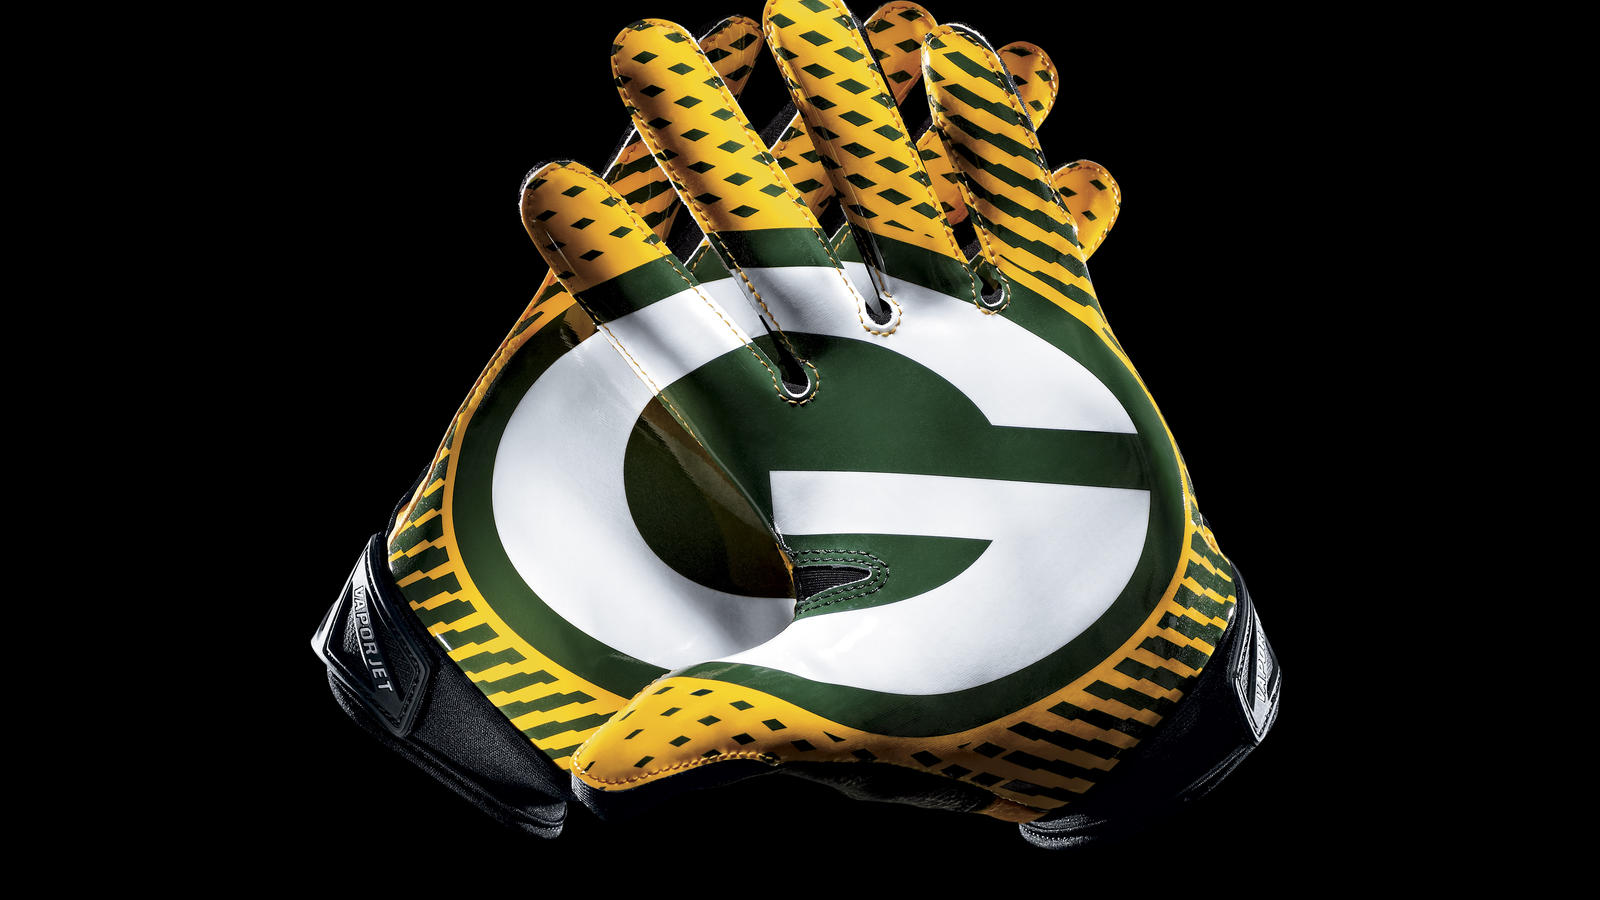 NFL_2012_Packers_VaporJet2Glove